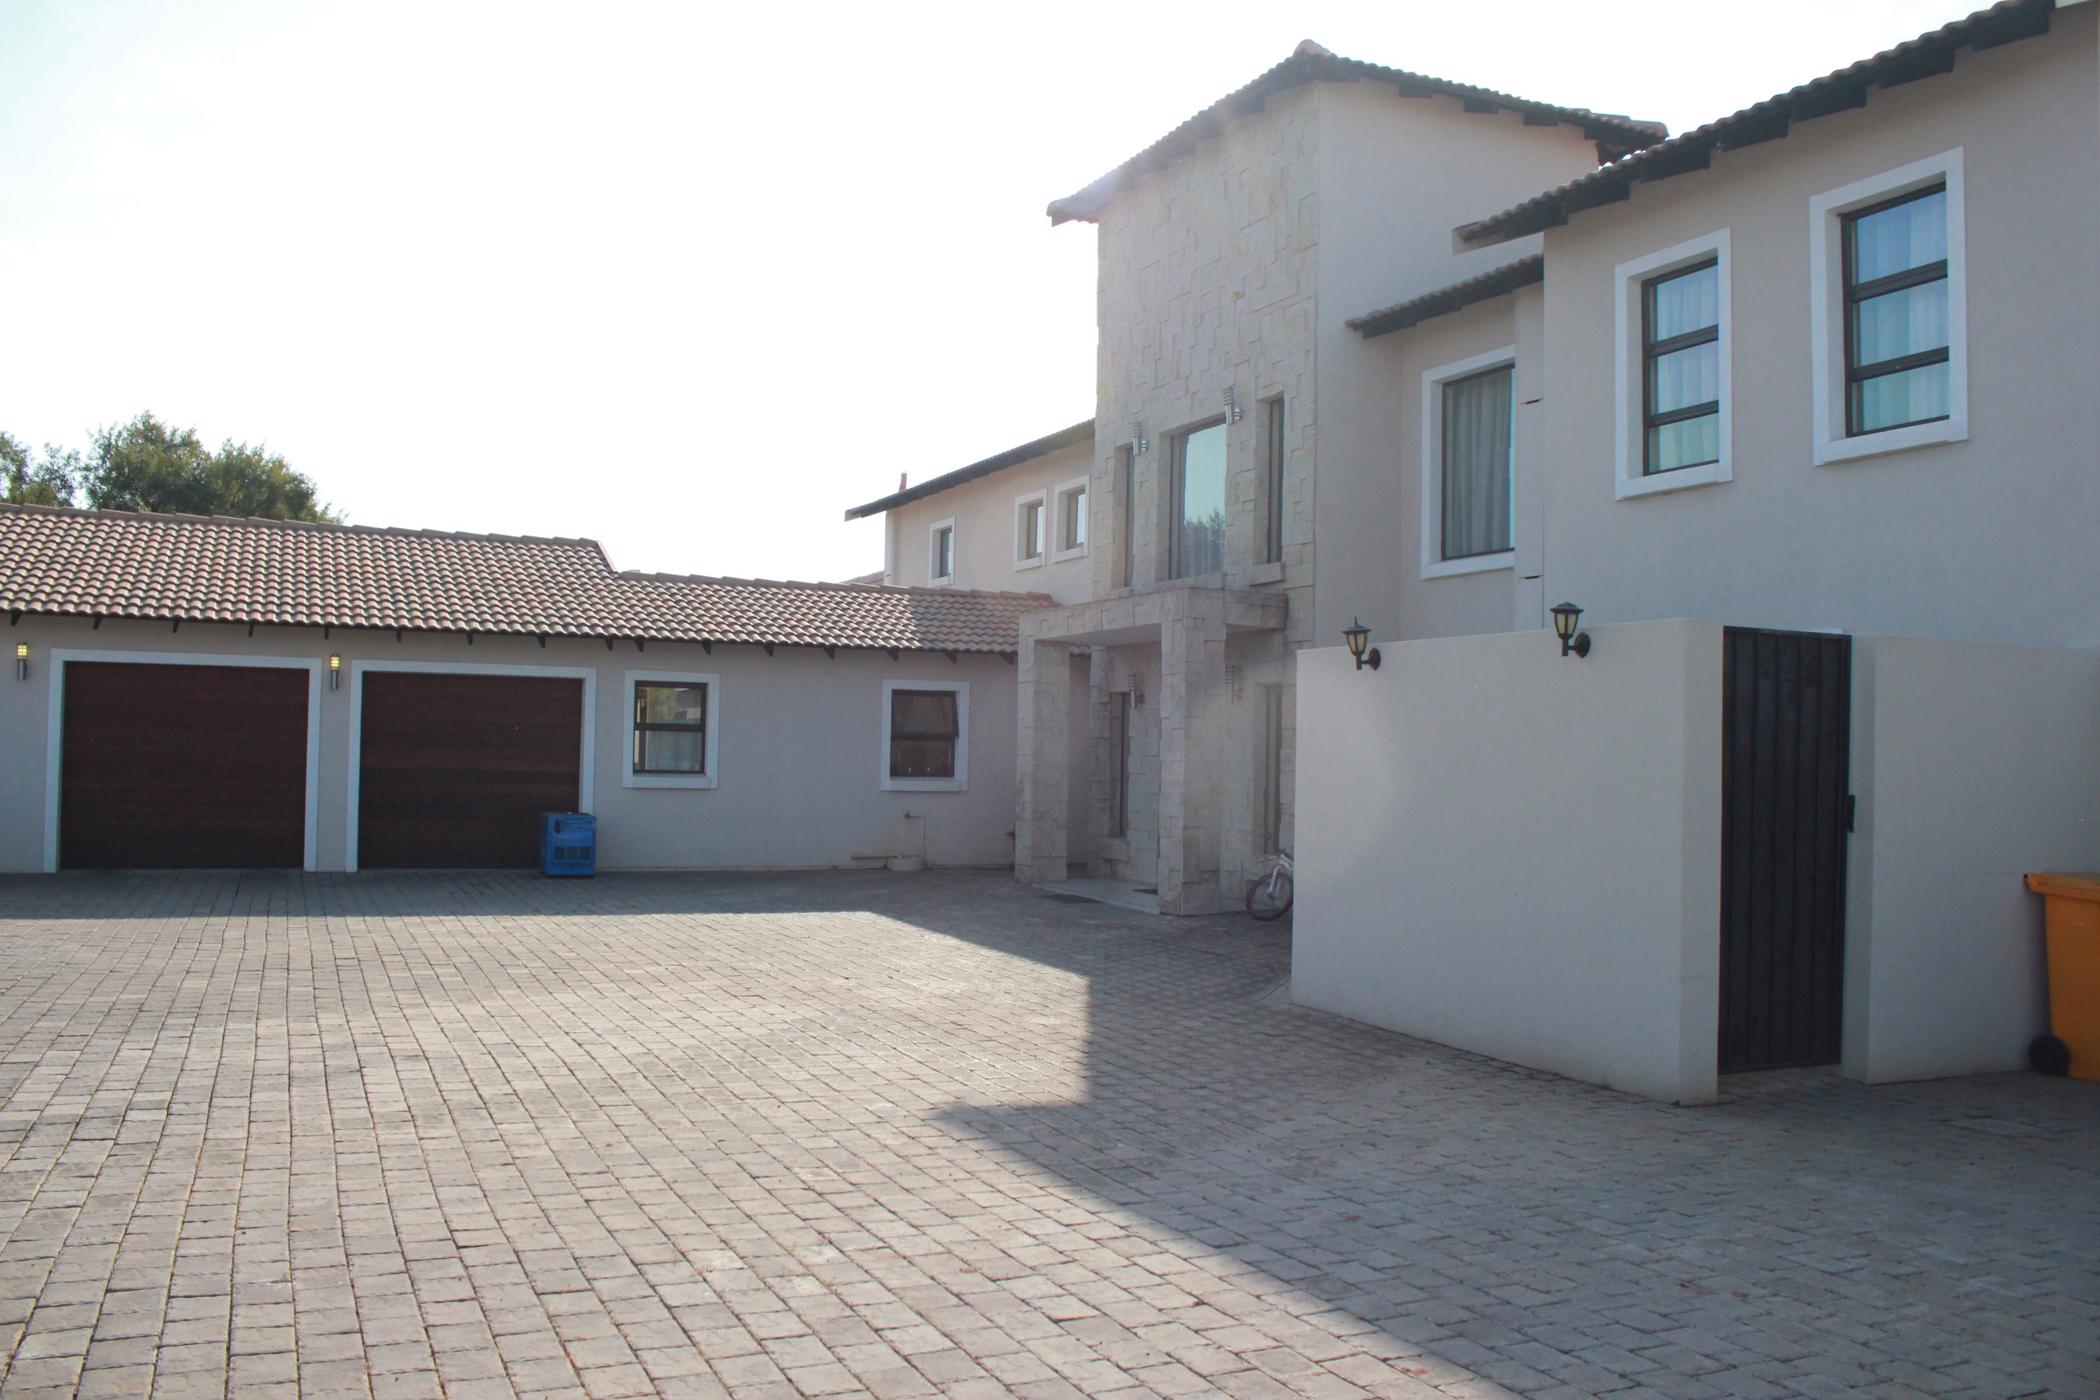 https://listing.pamgolding.co.za/images/properties/201907/479839/H/479839_H_44.jpg